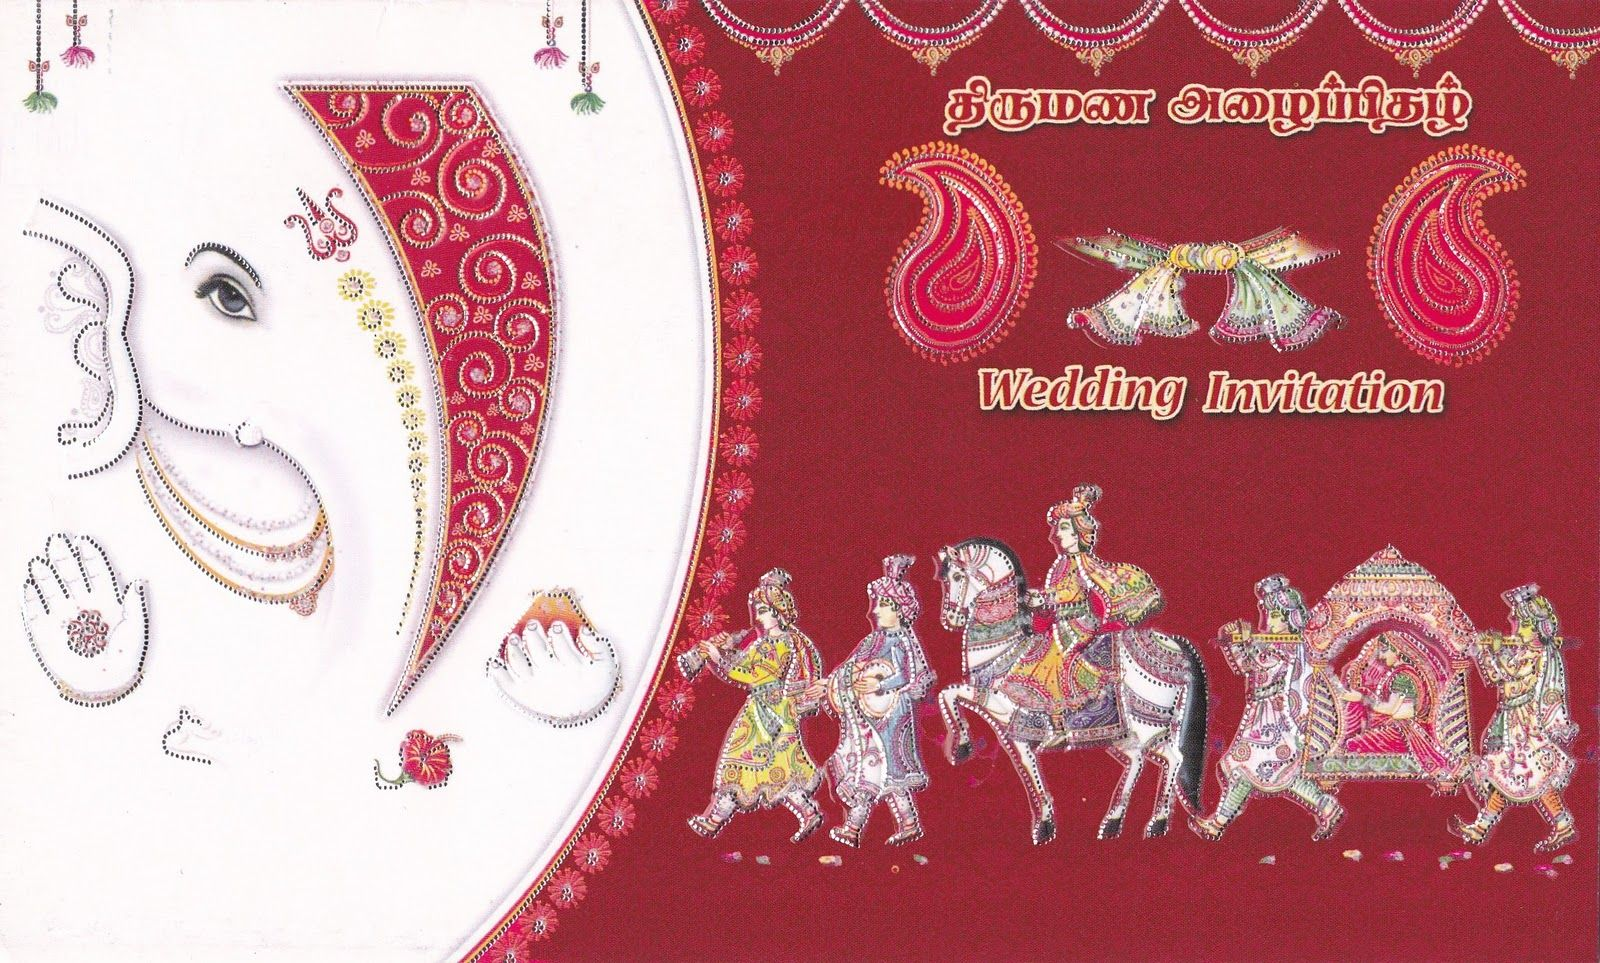 hindu wedding | Indian Wedding Card Design Photograph | of indian ...